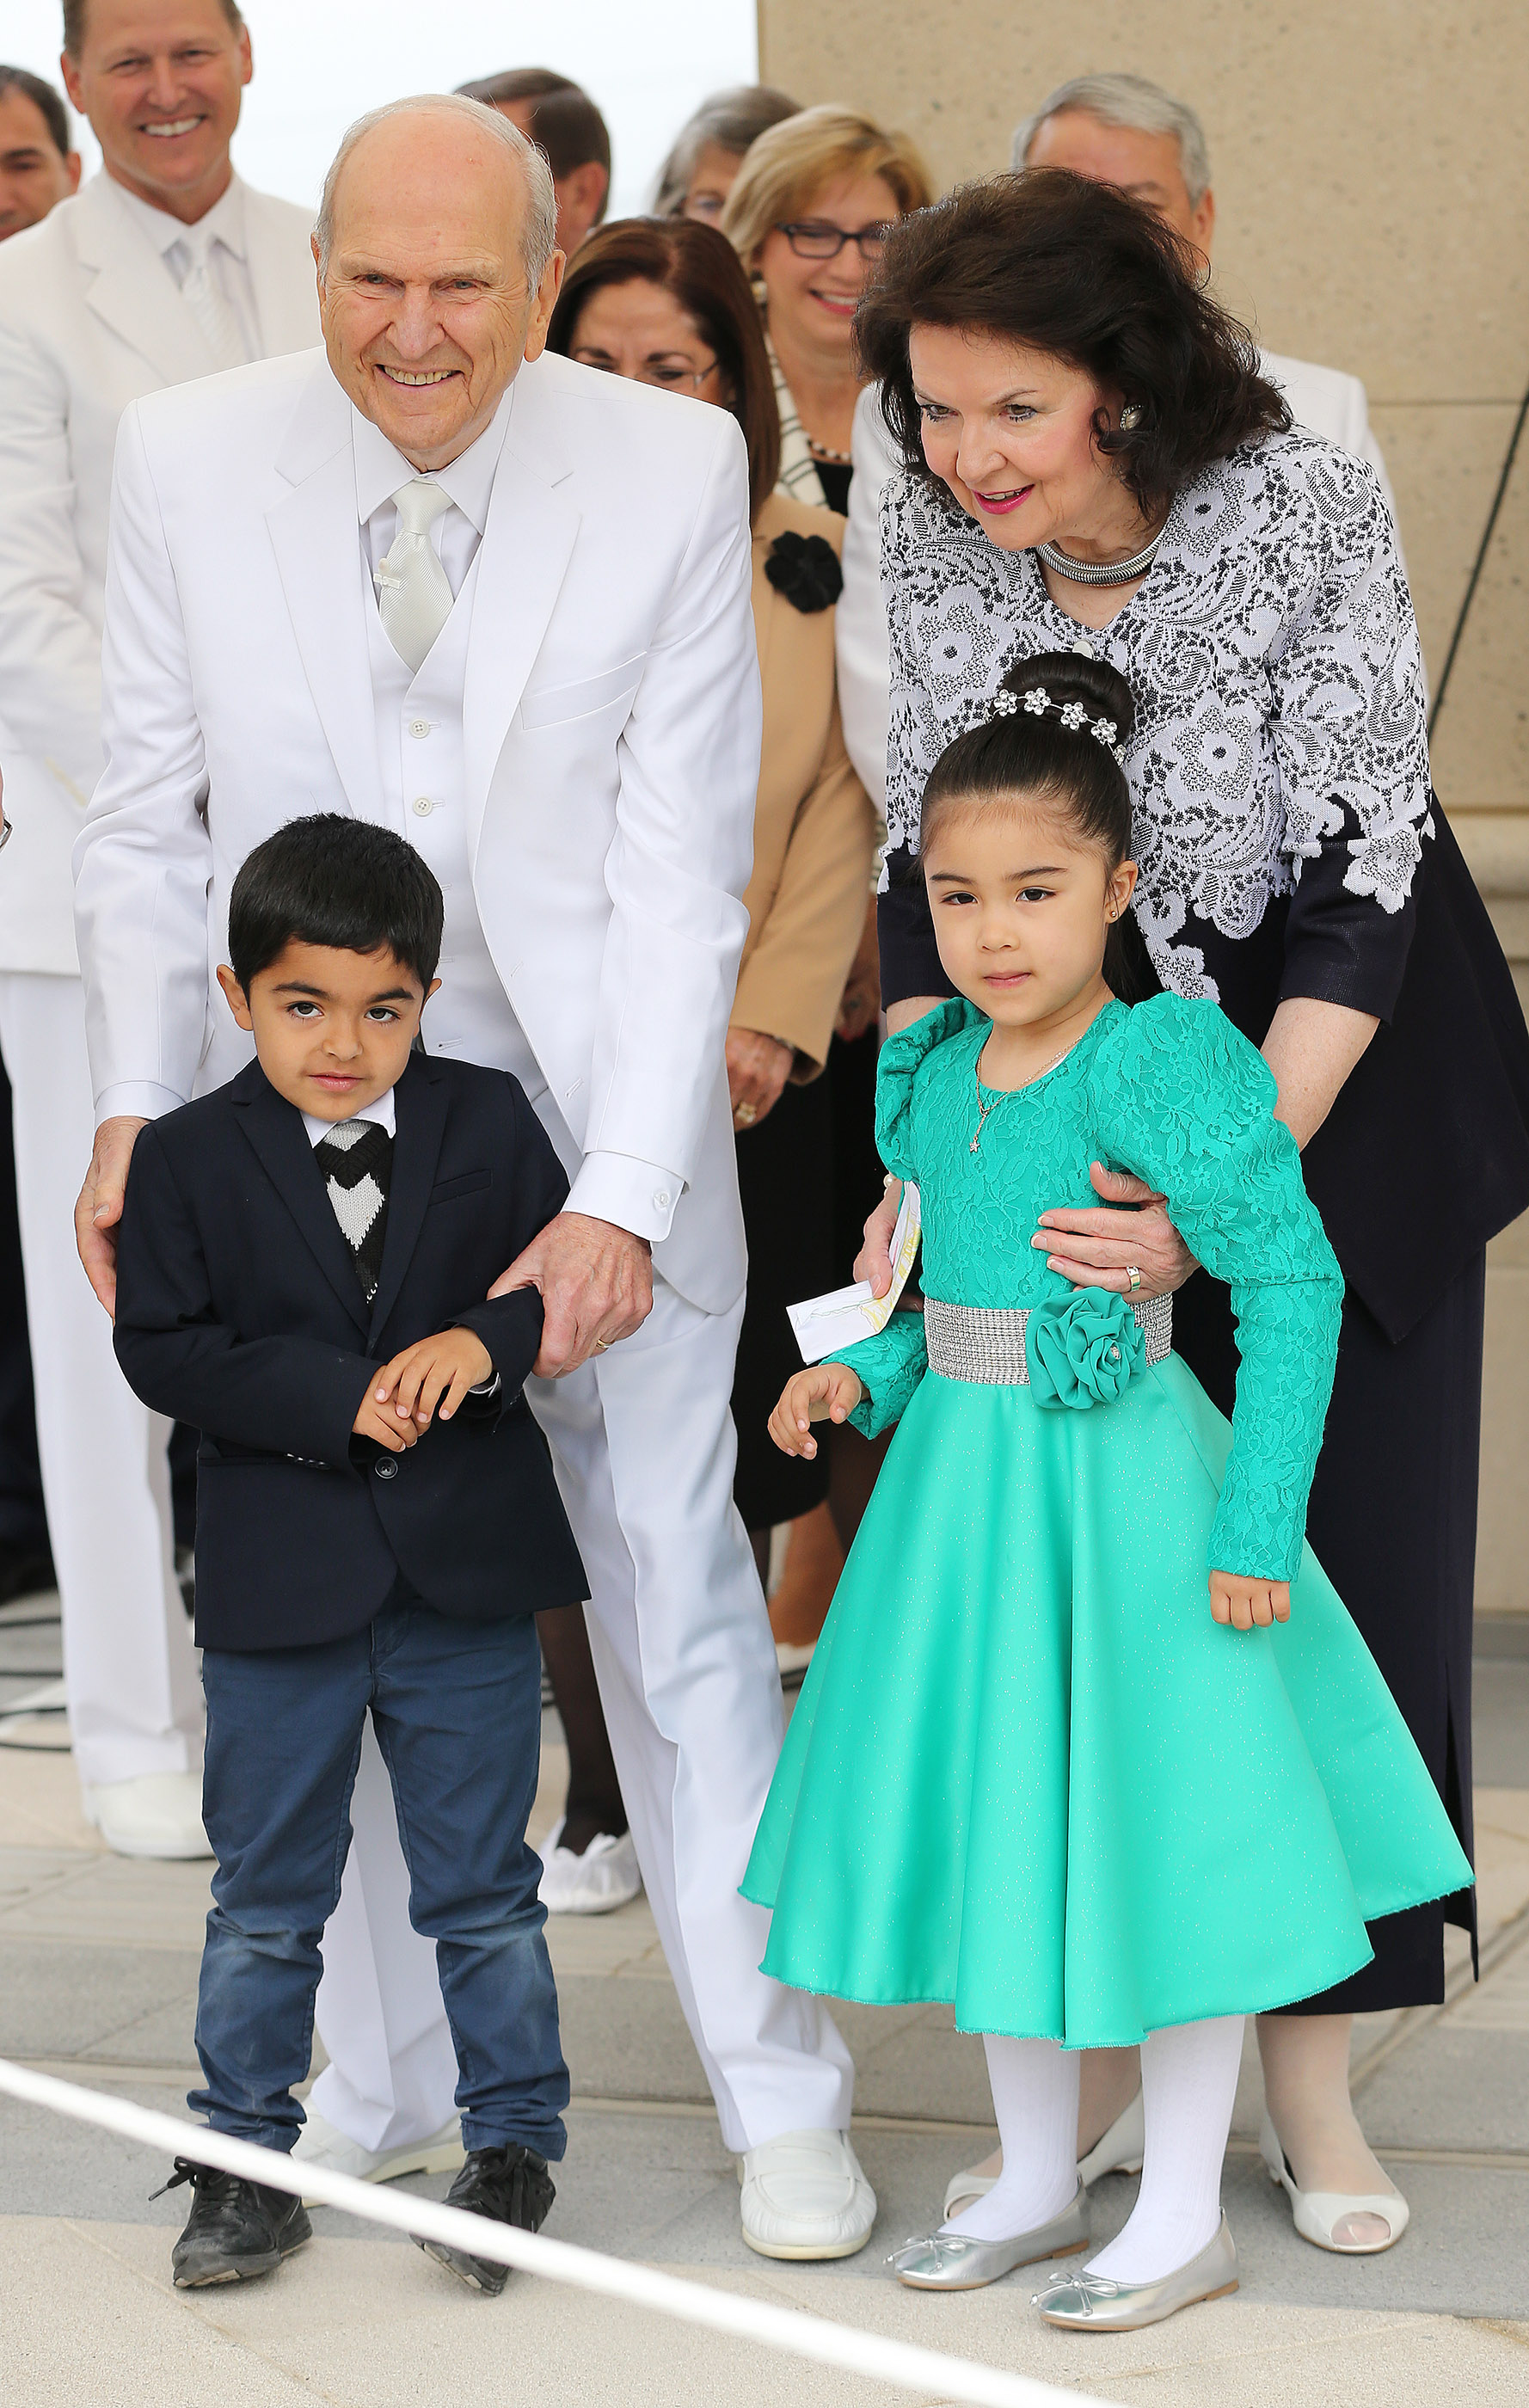 President Russell M. Nelson of The Church of Jesus Christ of Latter-day Saints and his wife, Sister Wendy Nelson, stand with attendees Augustine Escobar and Lilieth Rojas during the cornerstone ceremony of the Concepcion Chile Temple in Concepcion, Chile, on Sunday, Oct. 28, 2018.